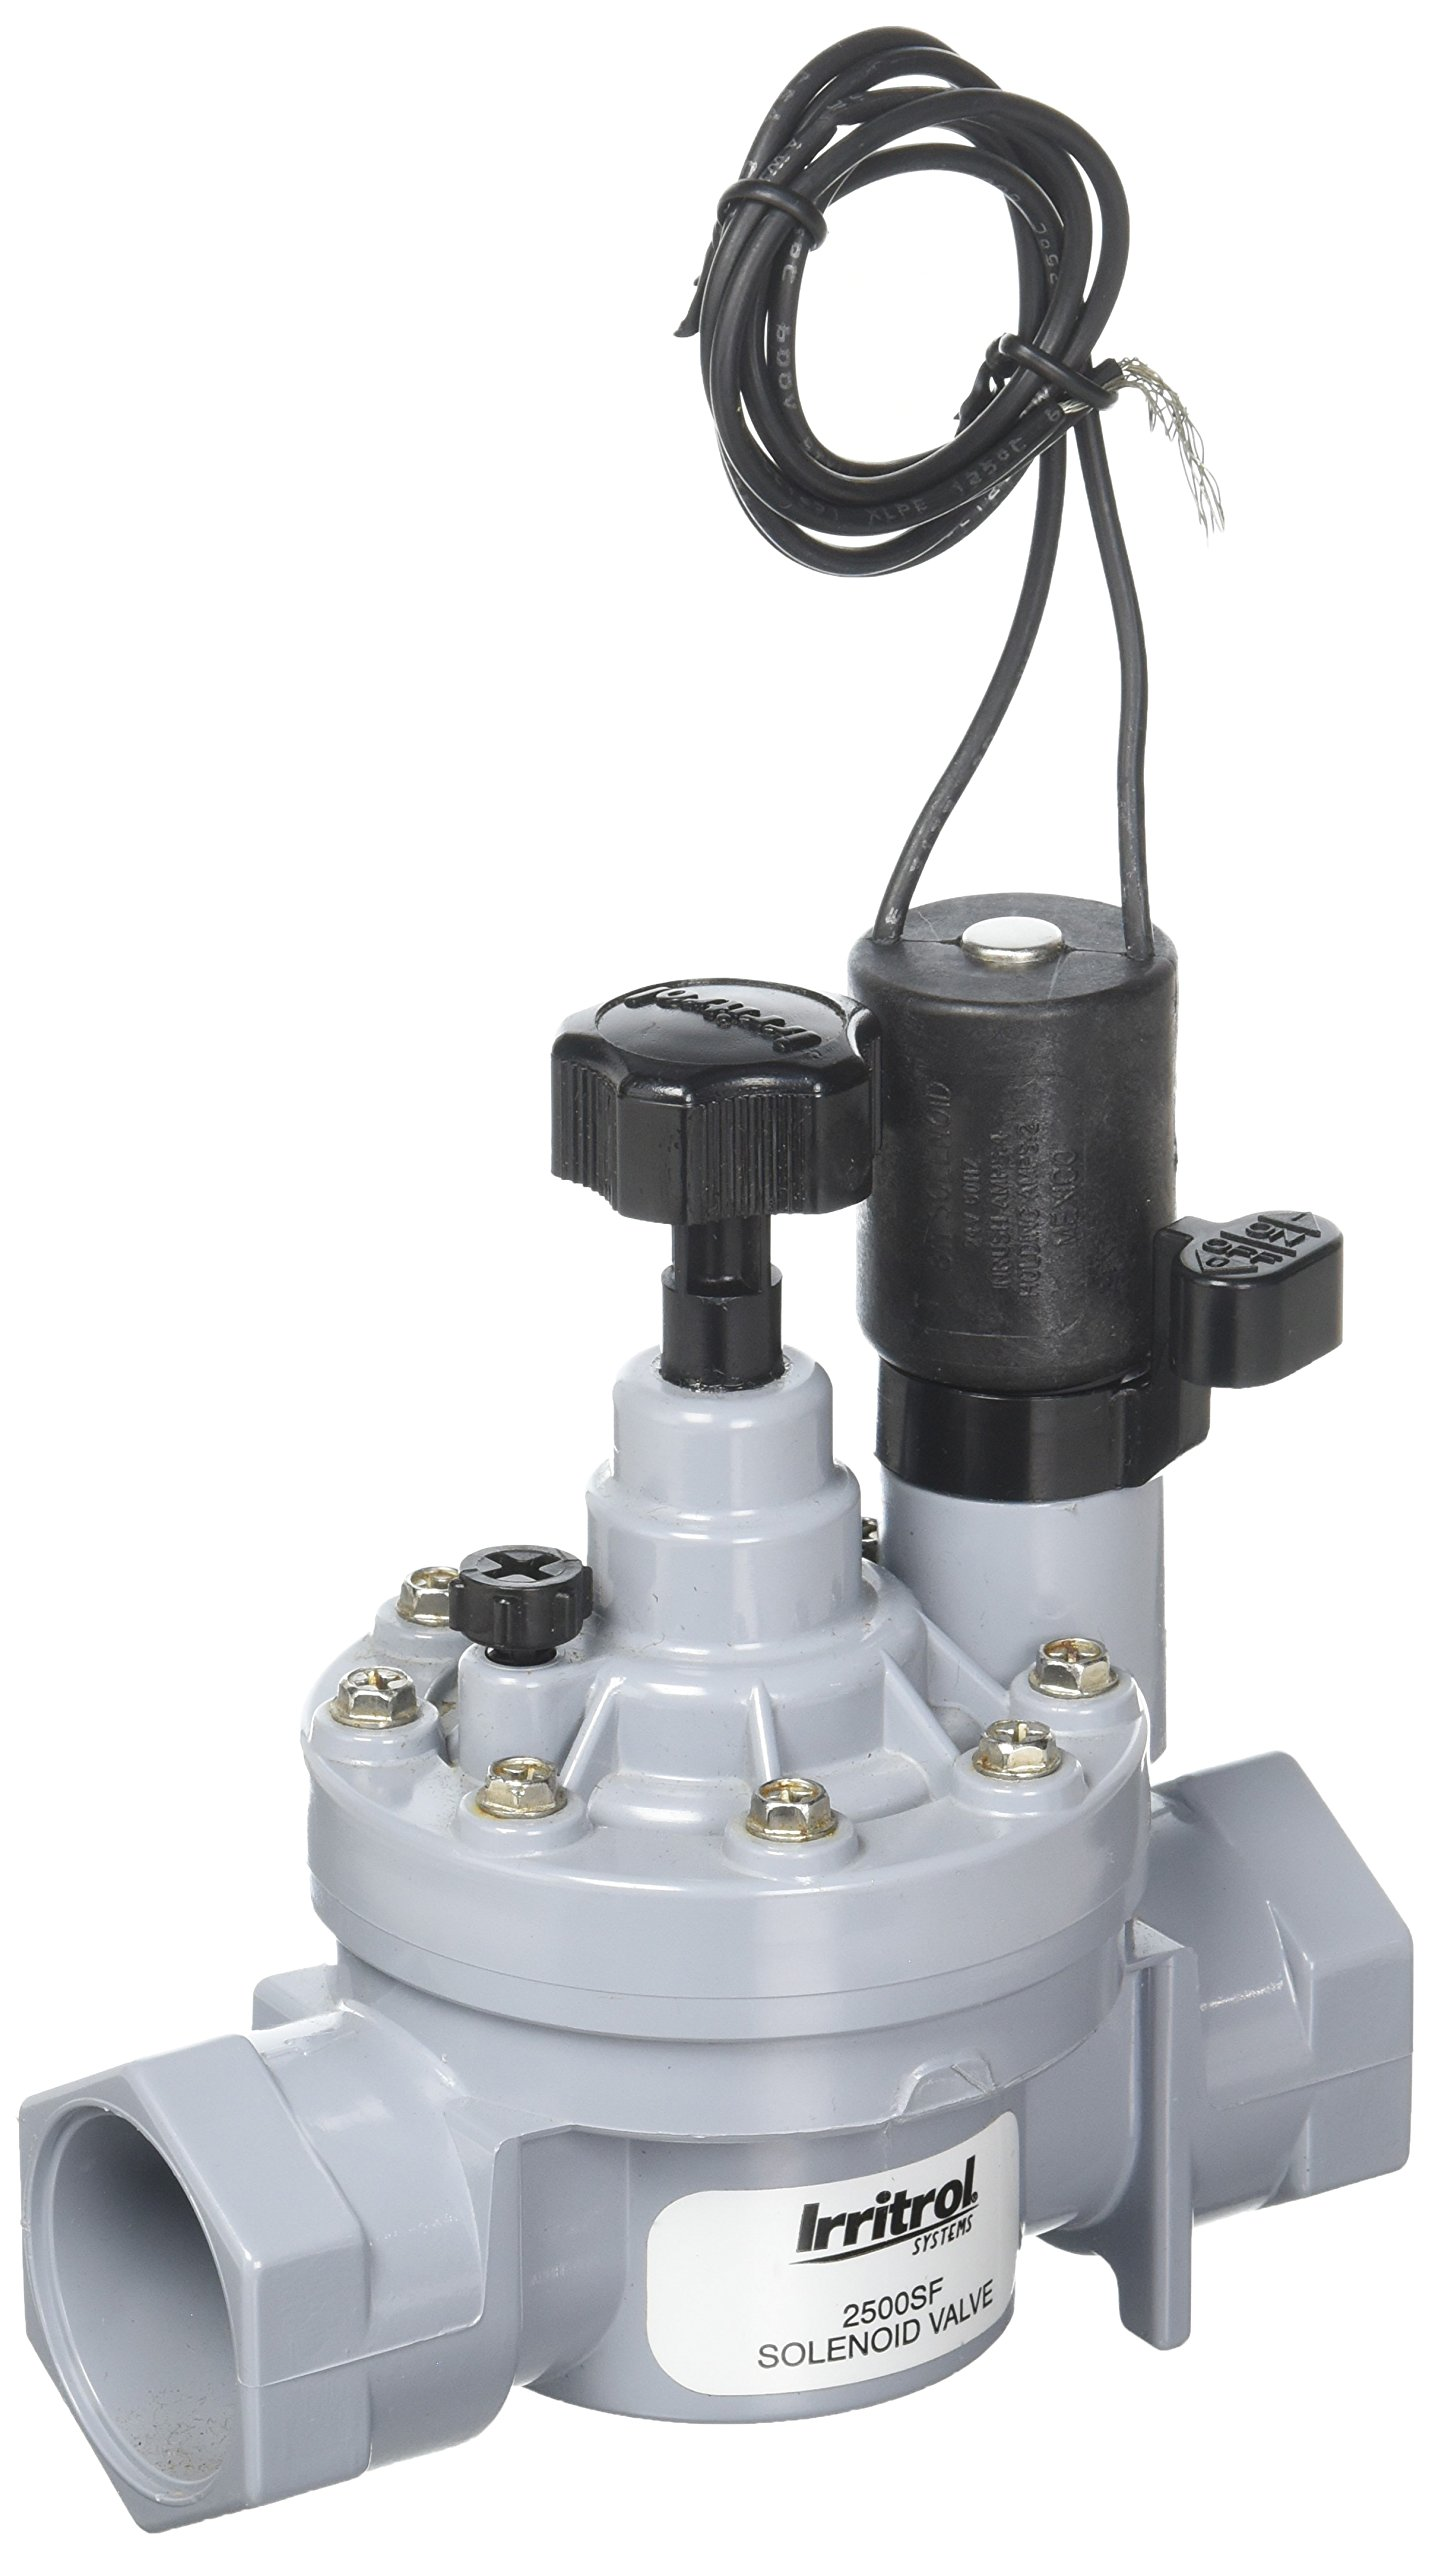 Irritrol 2500SF Glove Valve Slip Connection with Flow Control, 1''